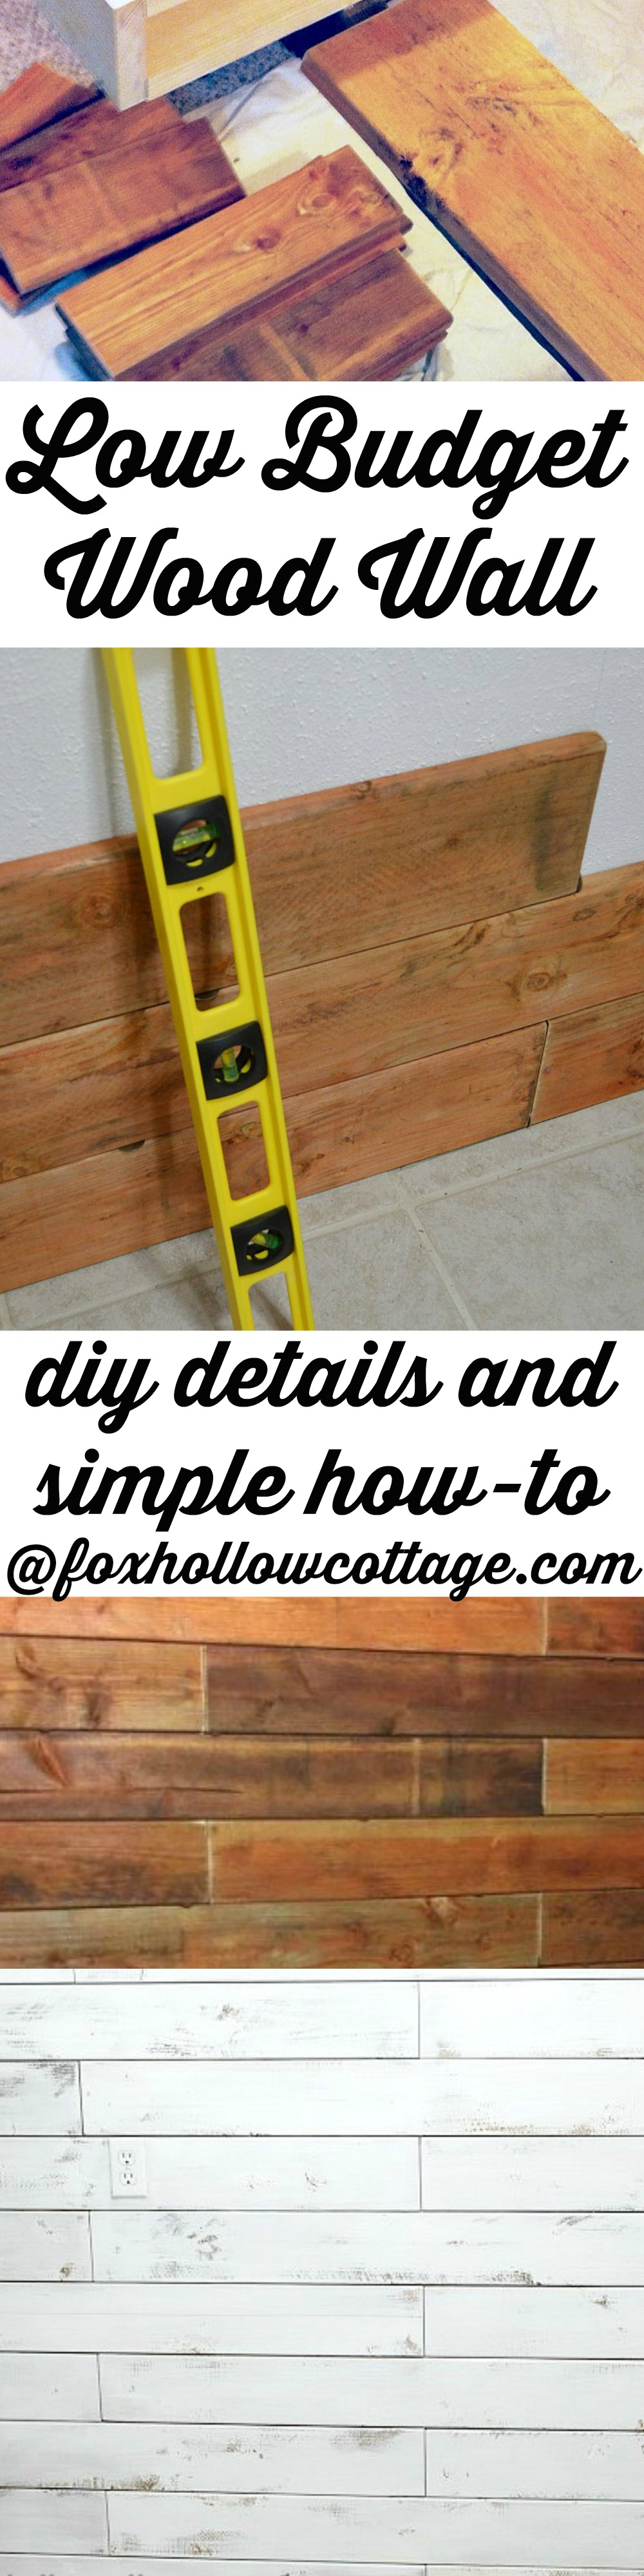 Cheap and Easy - Low Budget DIY Wood Planked Shiplap Wall How-To www.foxhollowcottage